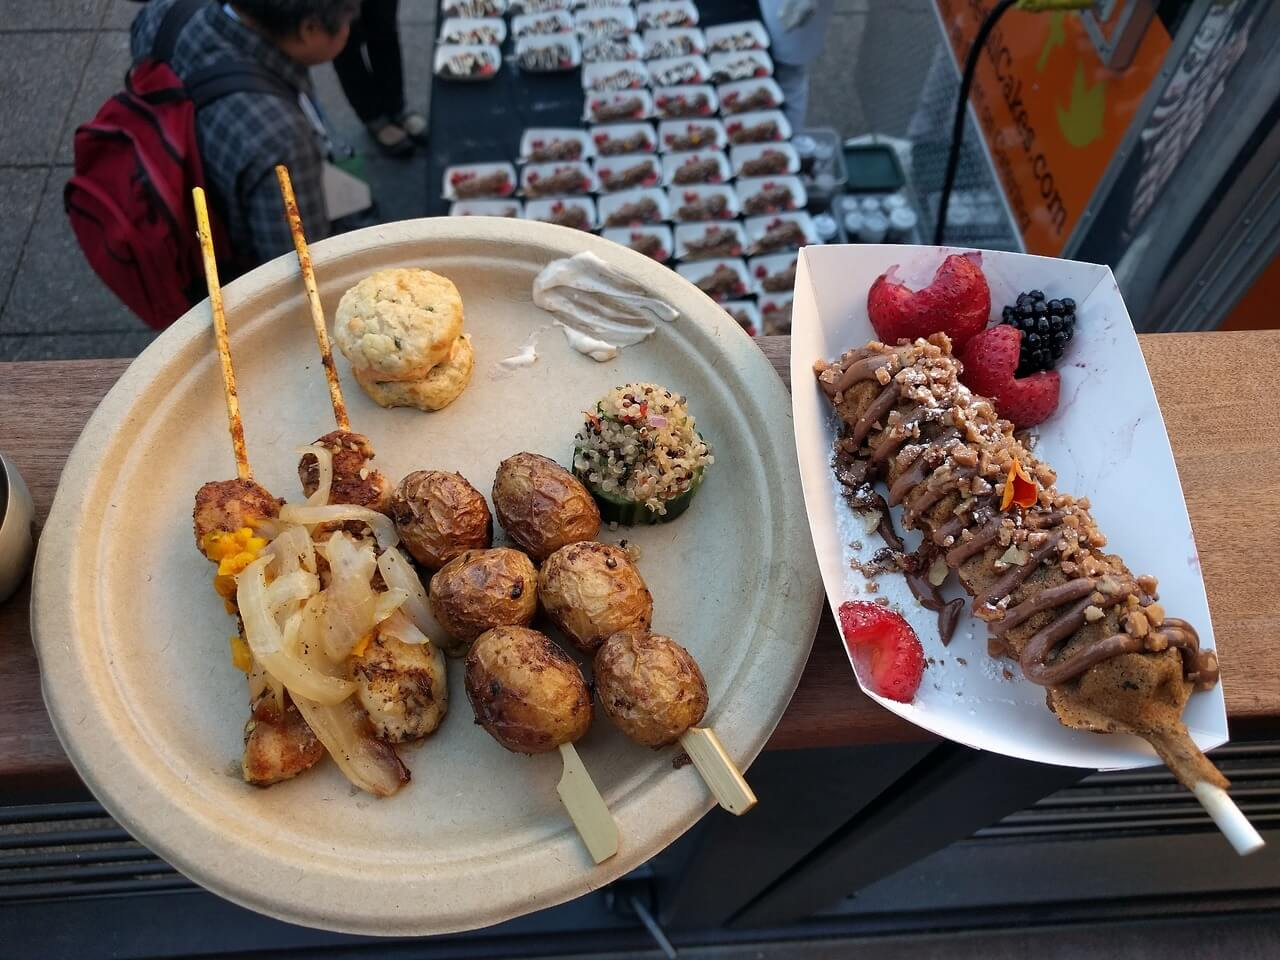 View of my dinner plate with chicken skewers, salt potato skewers, and other snacks, alongside a dessert treat on a stick.